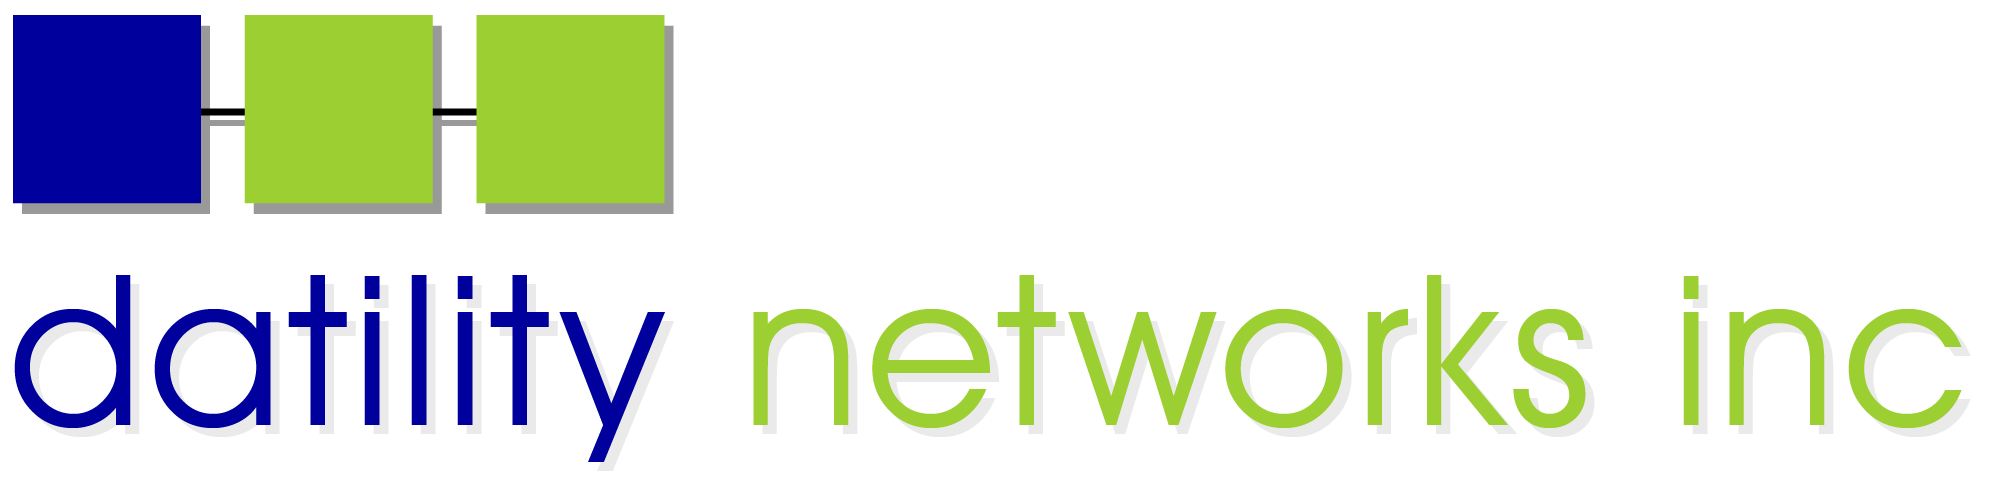 Datility Networks, Inc.